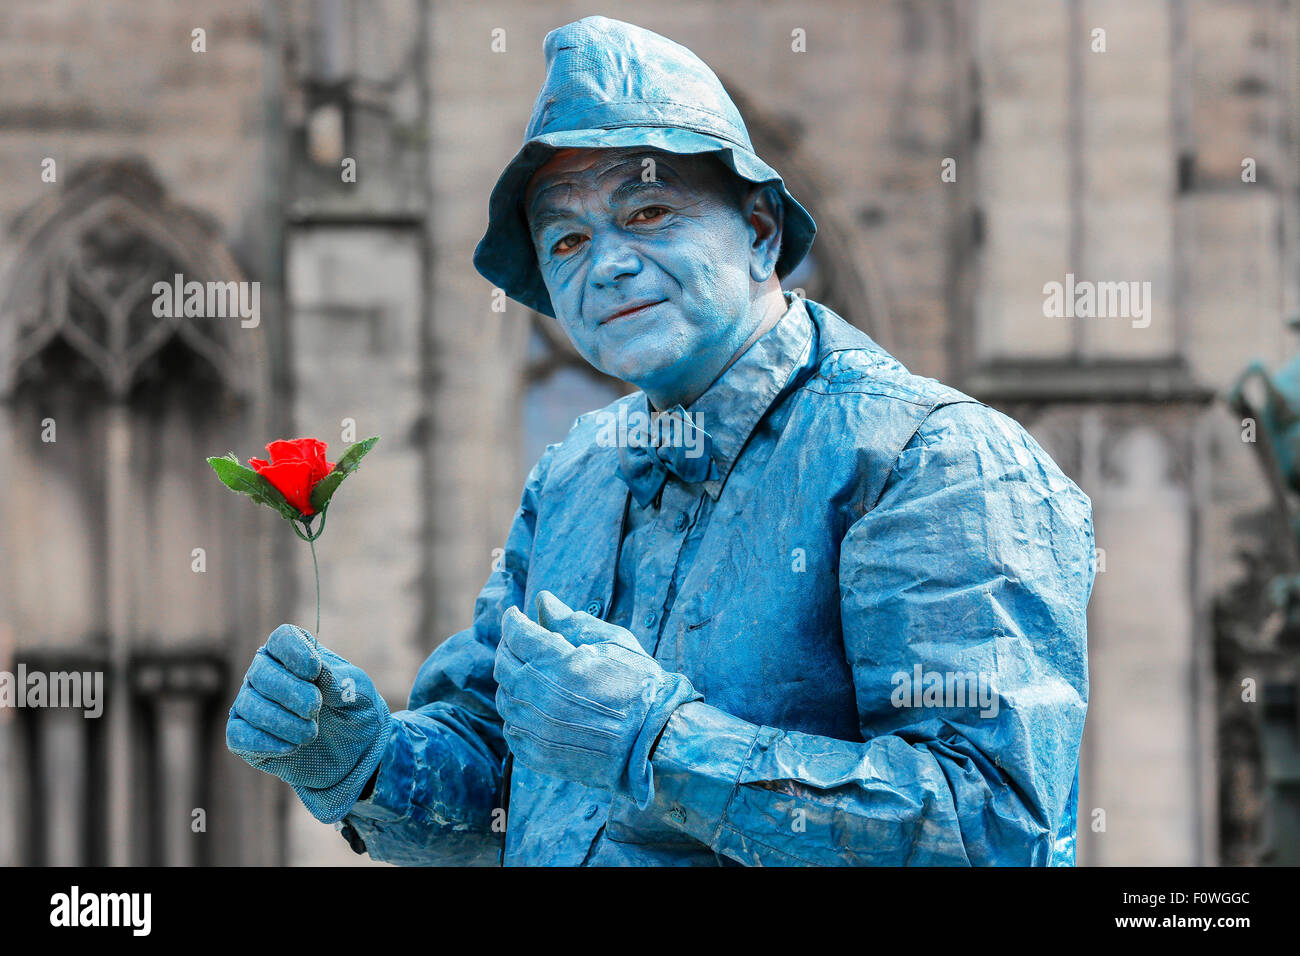 Nebojsa from Serbia, actor, as a street statue in the Royal Mile, Edinburgh during the Fringe Festival, Scotland, - Stock Image